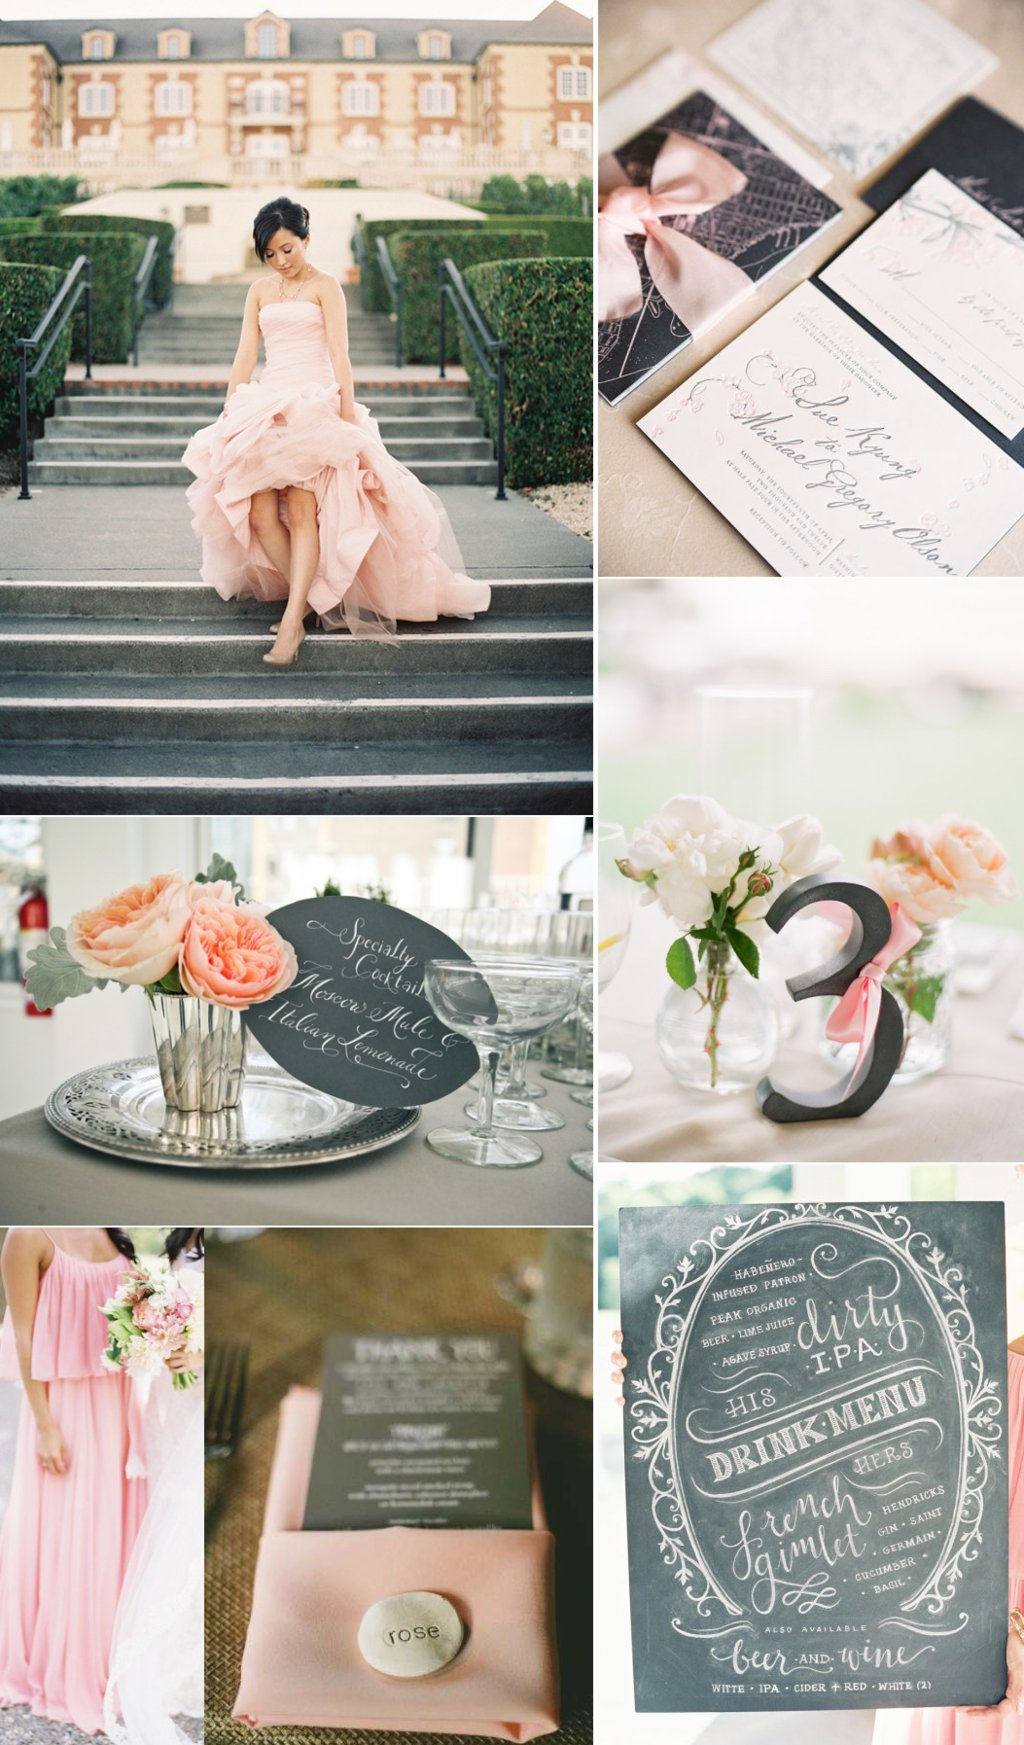 Wedding-color-inspiration-blush-and-charcoal.full